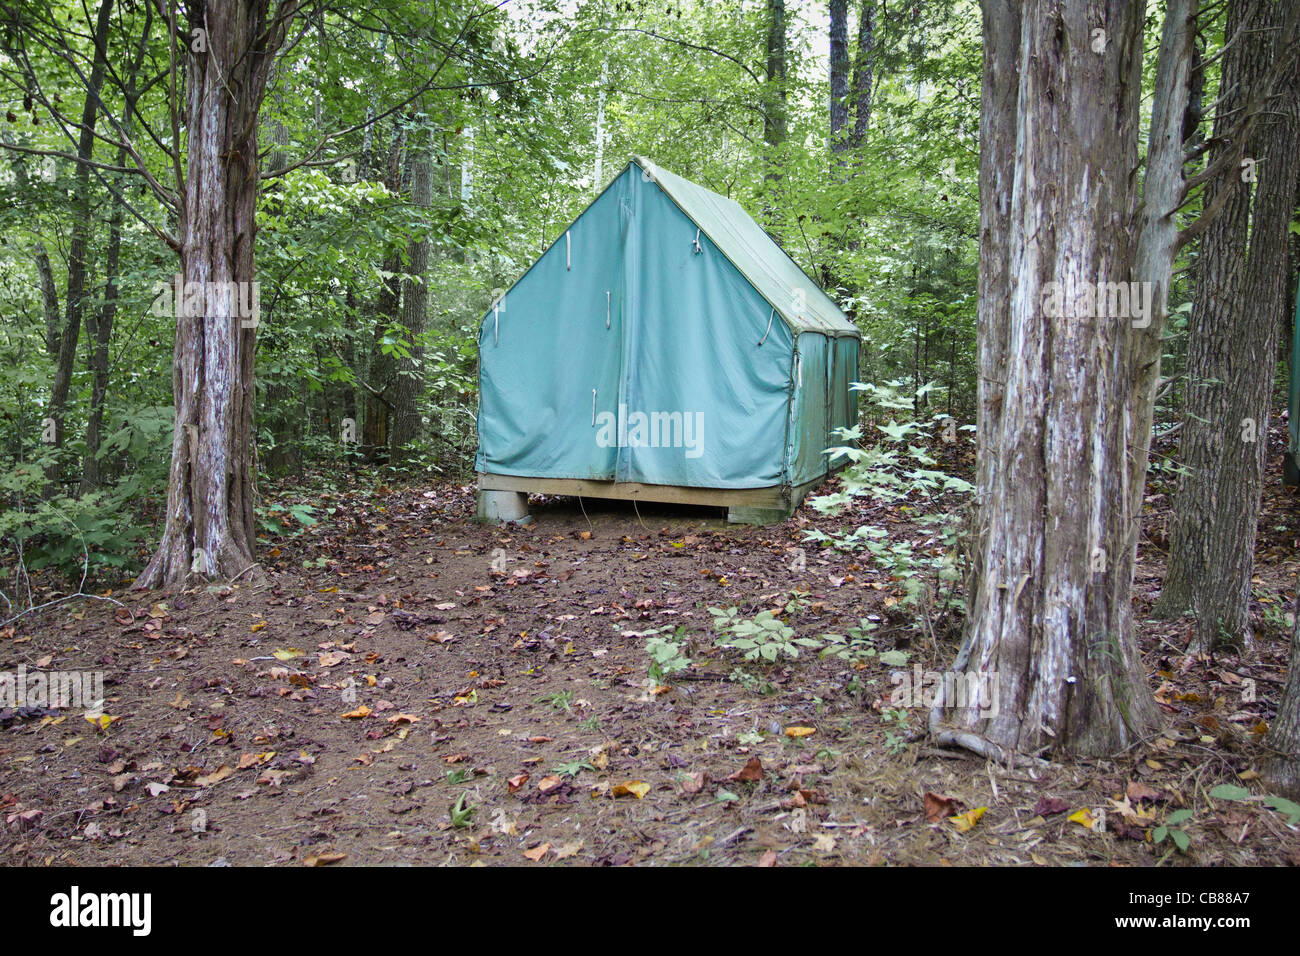 Tent in the woods - Stock Image